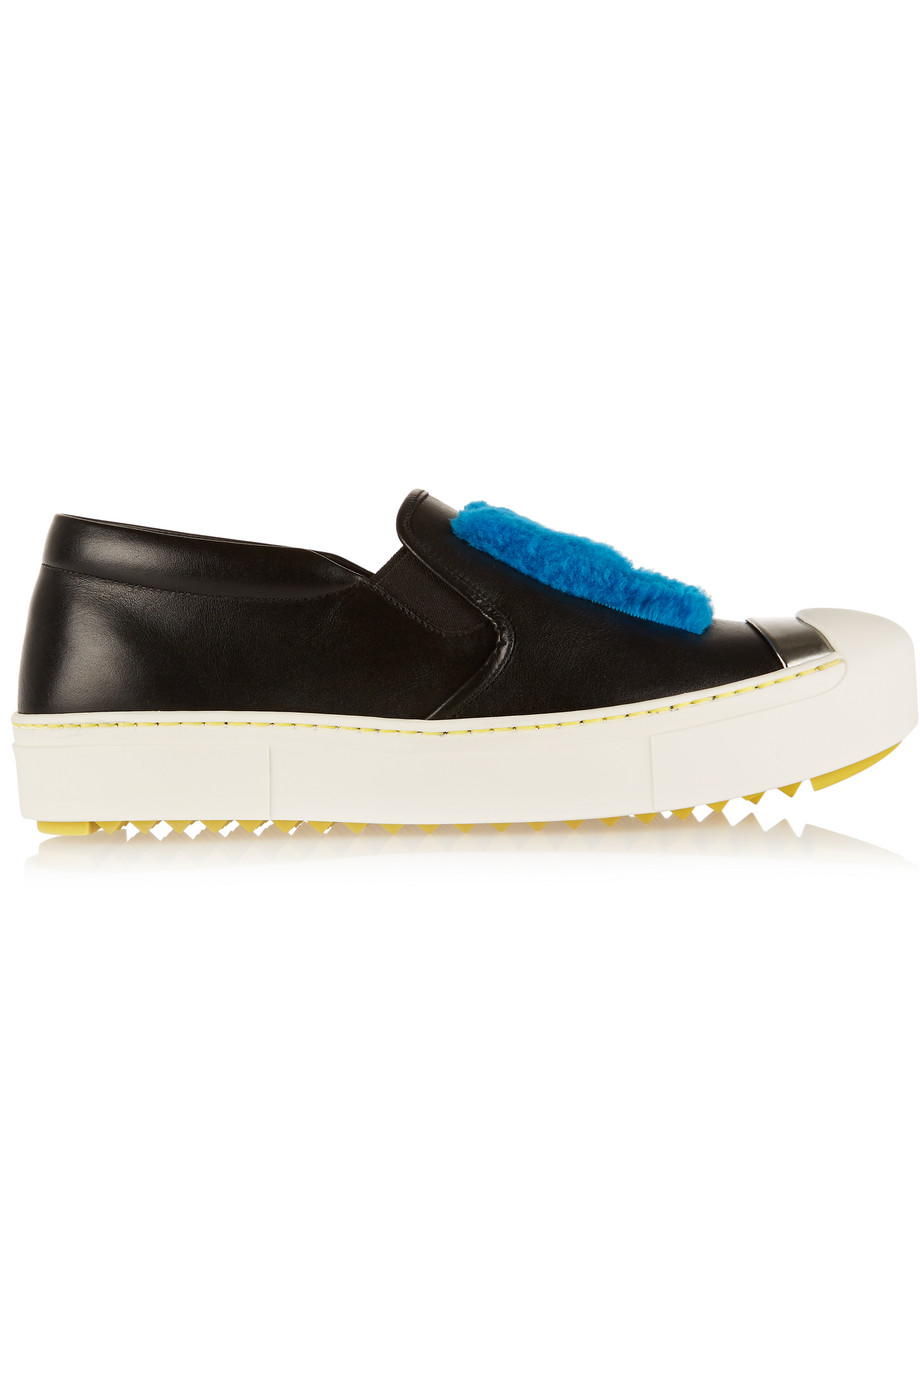 Fendi Faux Shearling-Trimmed Leather Slip-on Sneakers, Black, Women's US Size: 5.5, Size: 36